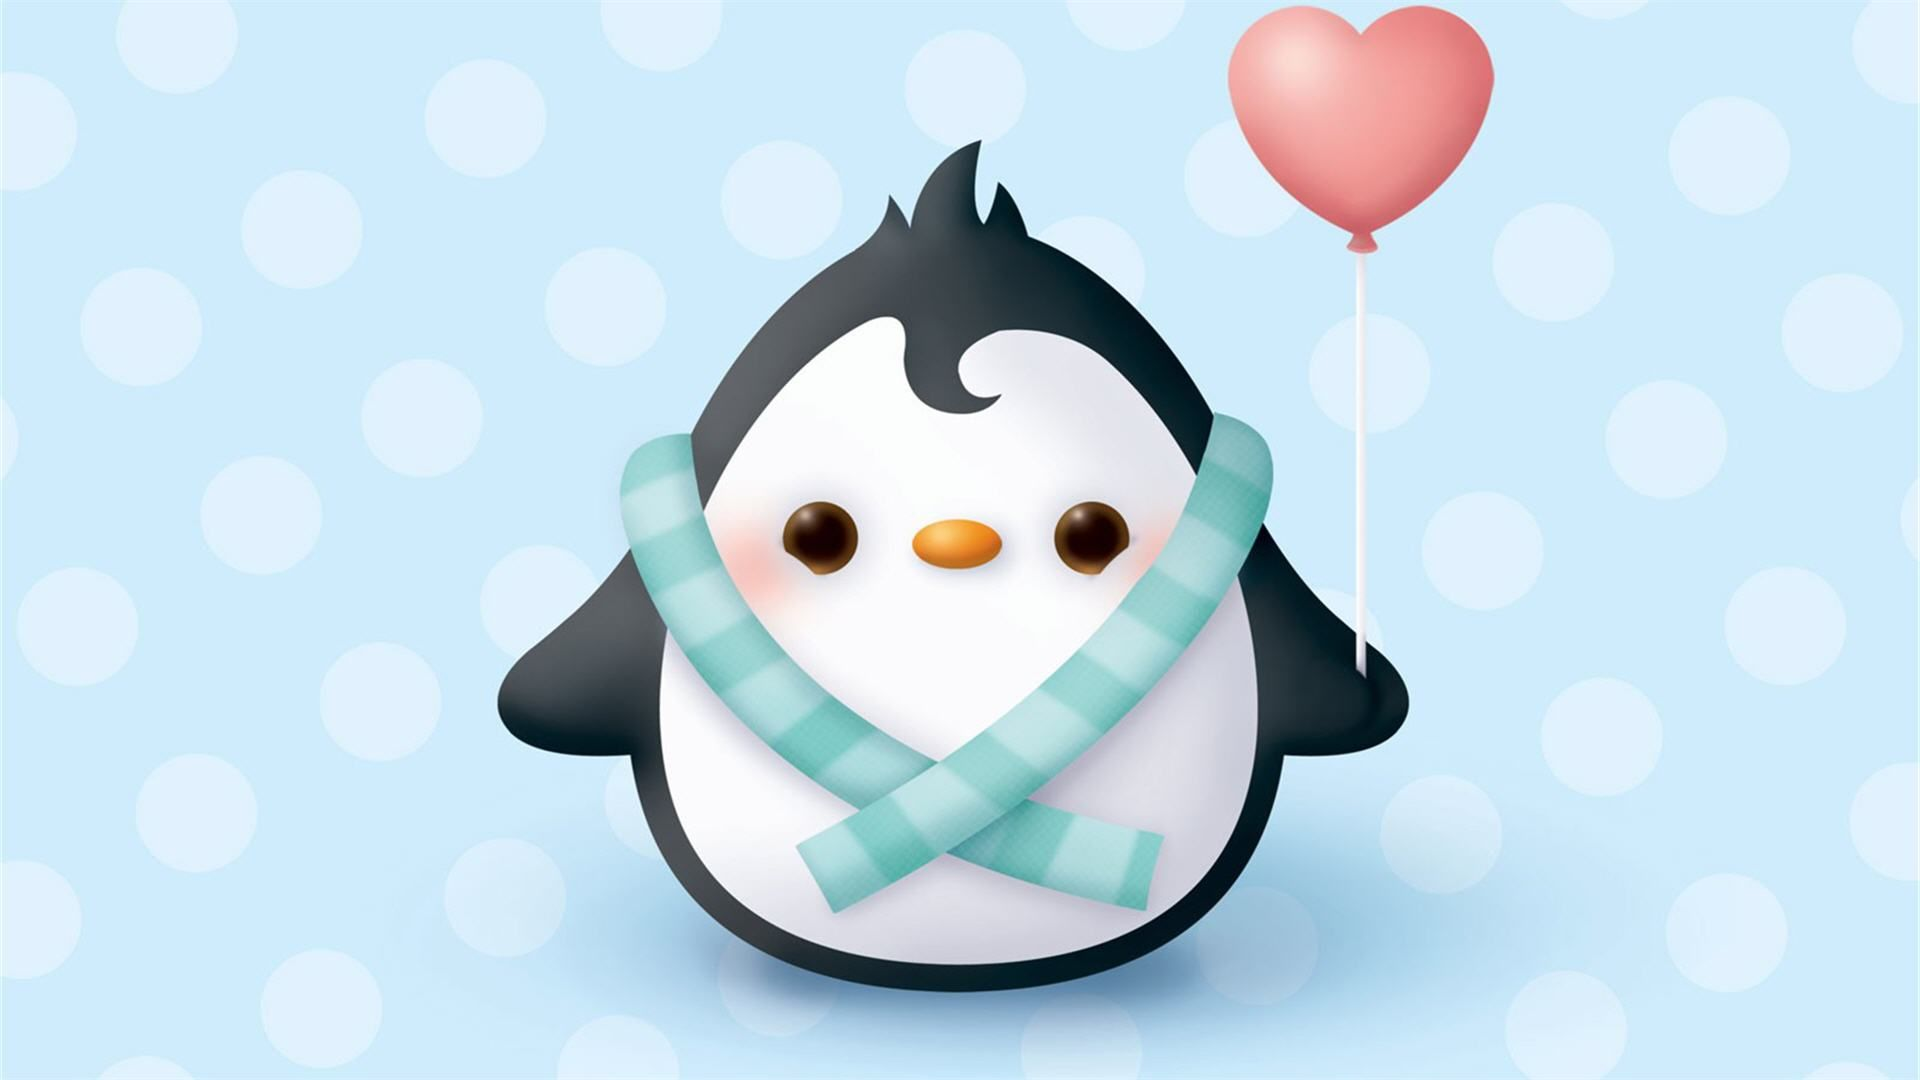 pictures of animation cute animation Cute Animated Penguins 1920x1080